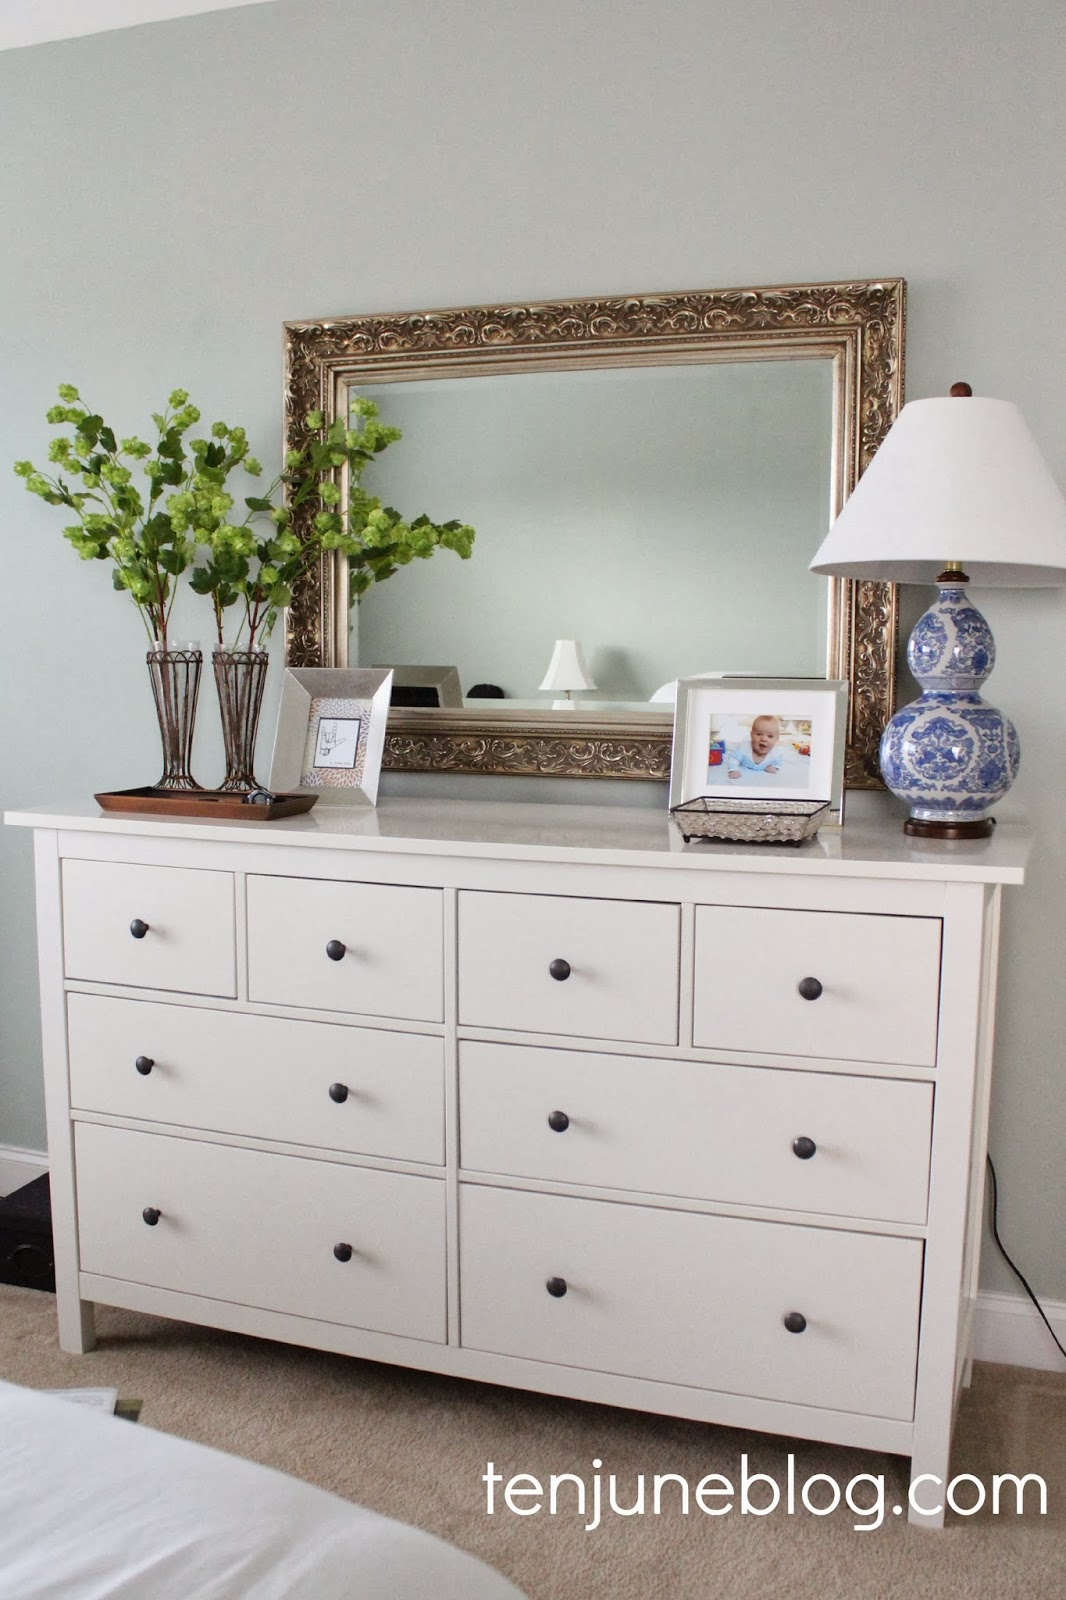 Ten june master bedroom dresser vignette for Dresser ideas for small bedroom